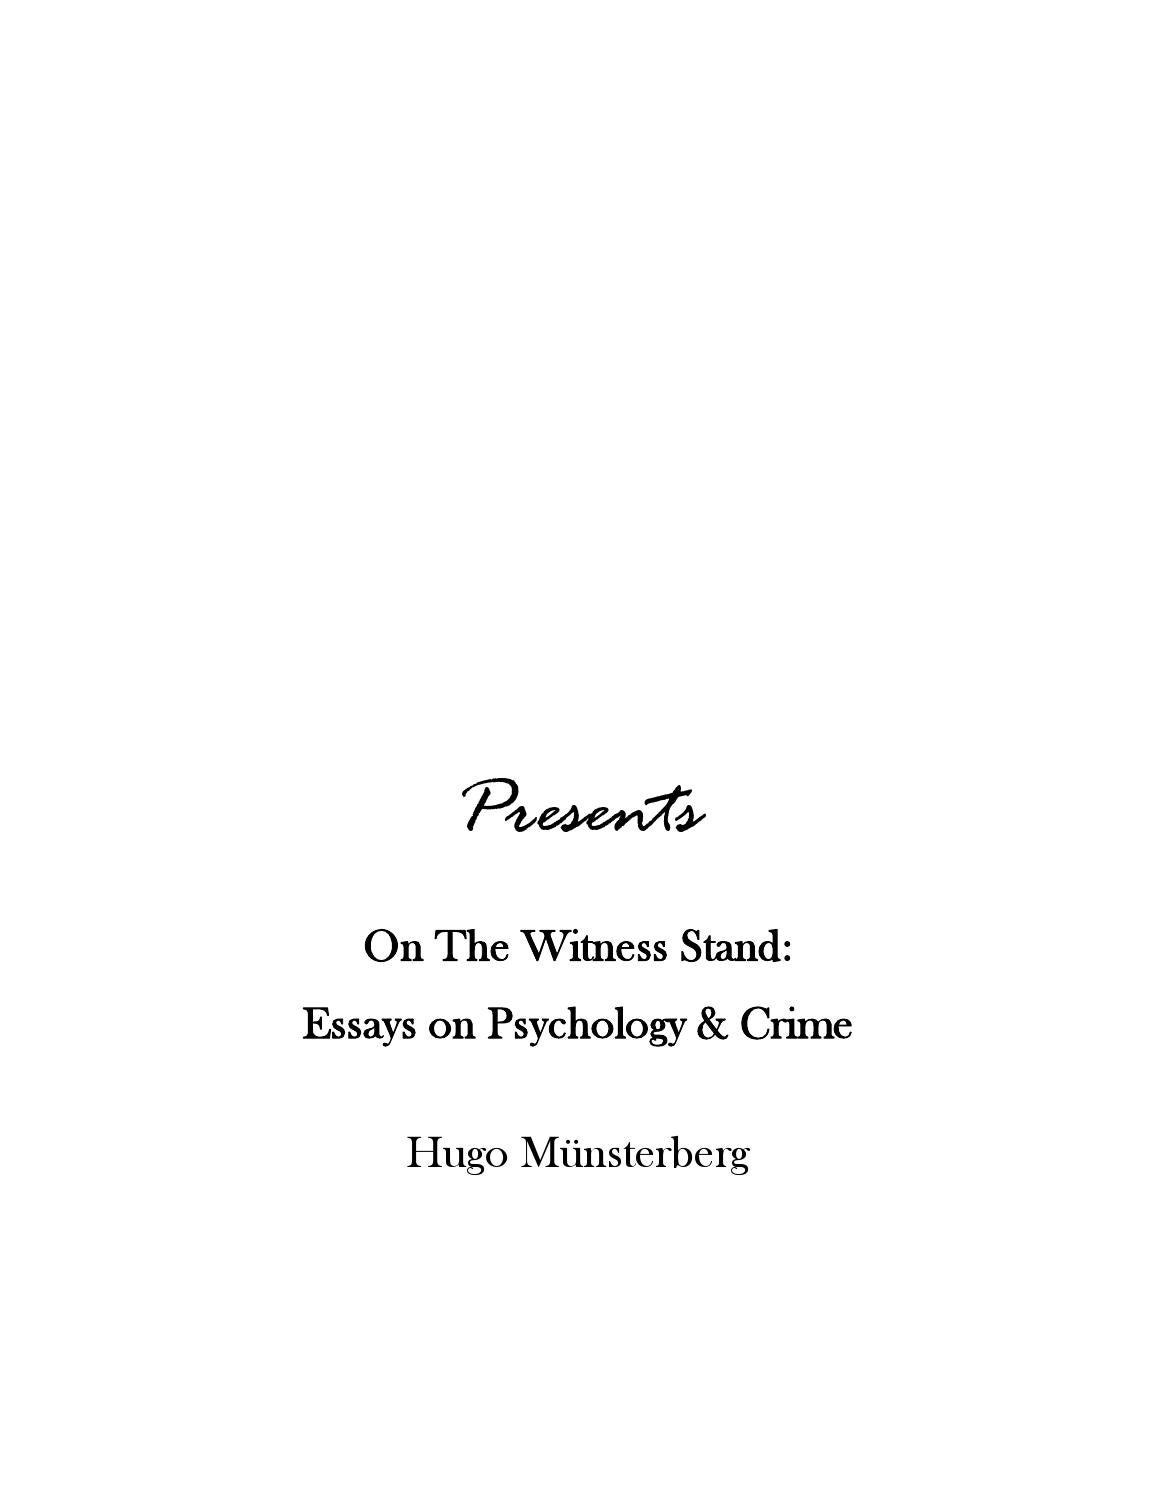 hugo munsterberg thesis Introduction: cognitivism and film theory as early as 1916, the pioneer film theorist hugo munsterberg stated the thesis of his little book as.